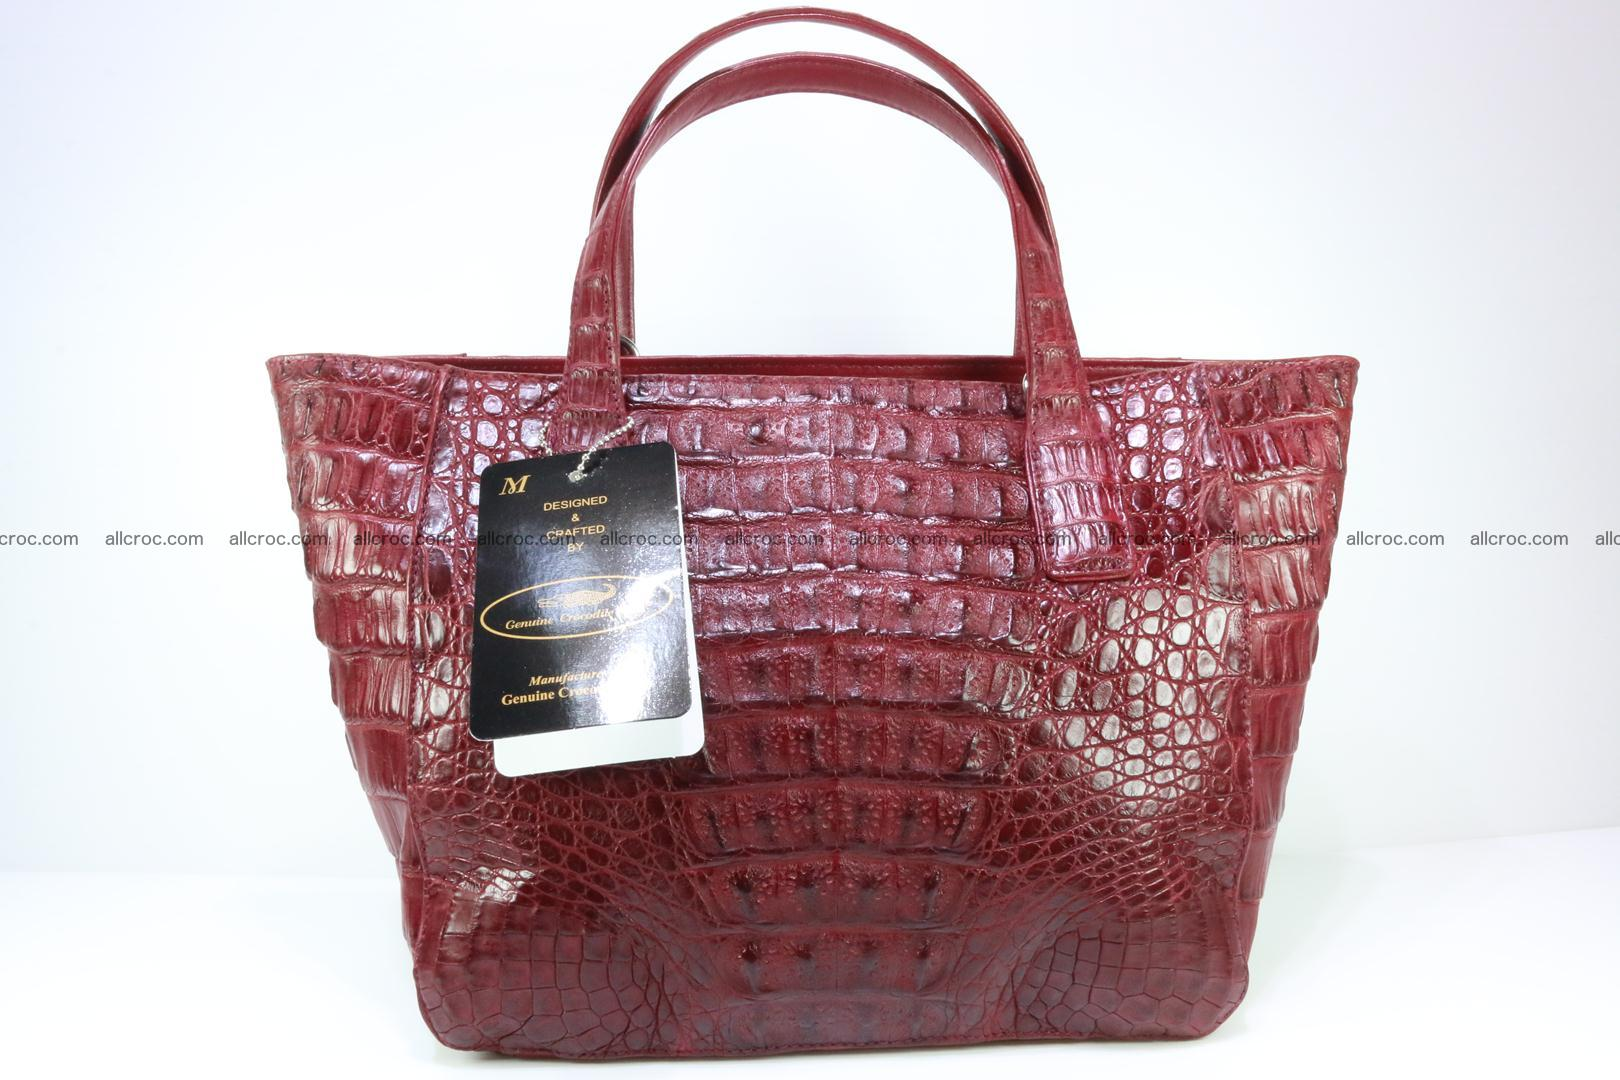 Genuine crocodile women's handbag 054 Foto 2